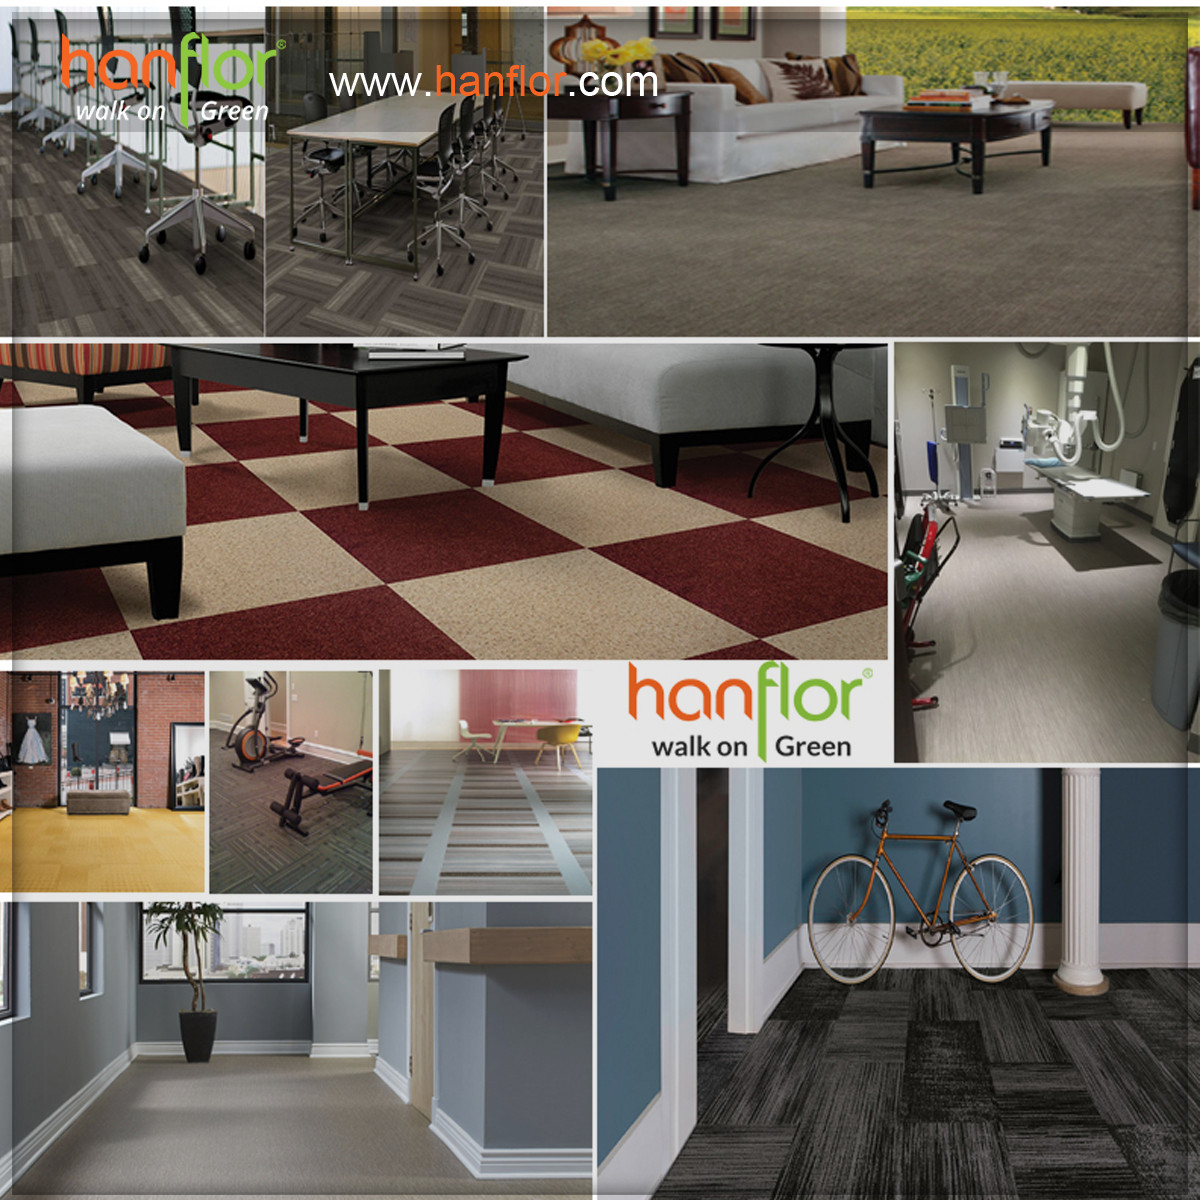 Applications: Hanhent hanflor with good quality pvc flooring, the pvc floor goods widely use for home, office, apartment, hotel, living room, bedroom,gym, school, hospital and many places. plastic floor,pvc floor, Vinyl floor, plastic flooring, pvc flooring, Vinyl flooring, pvc plank, vinyl plank, pvc tile, vinyl tile, click vinyl flooring, interlocking vinyl flooring, unilin click flooring, unilin click vinyl flooring, click pvc flooring, interlocking pvc flooring, unilin click vinyl flooring, unilin click pvc flooring